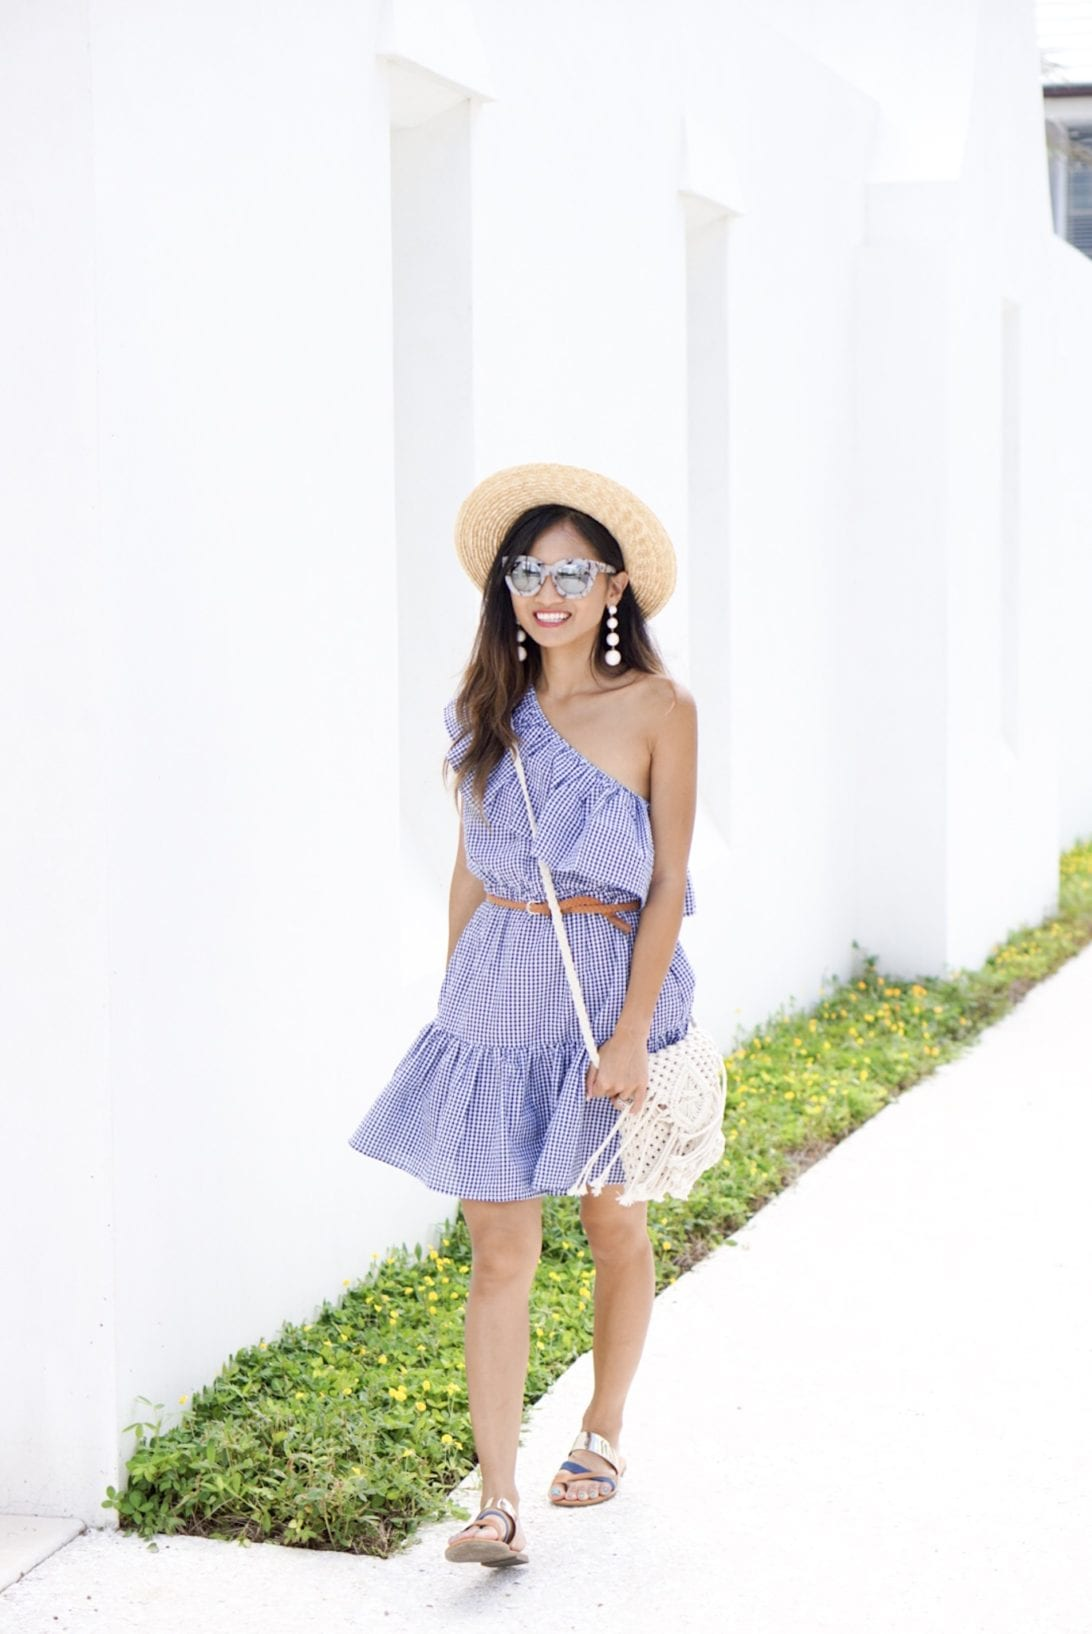 MINKPINK Wanderer One Shoulder Dress in Navy & White, gingham dress, agaci sandals, quay sunglasses, alys beach, Florida, 30a, visit Florida